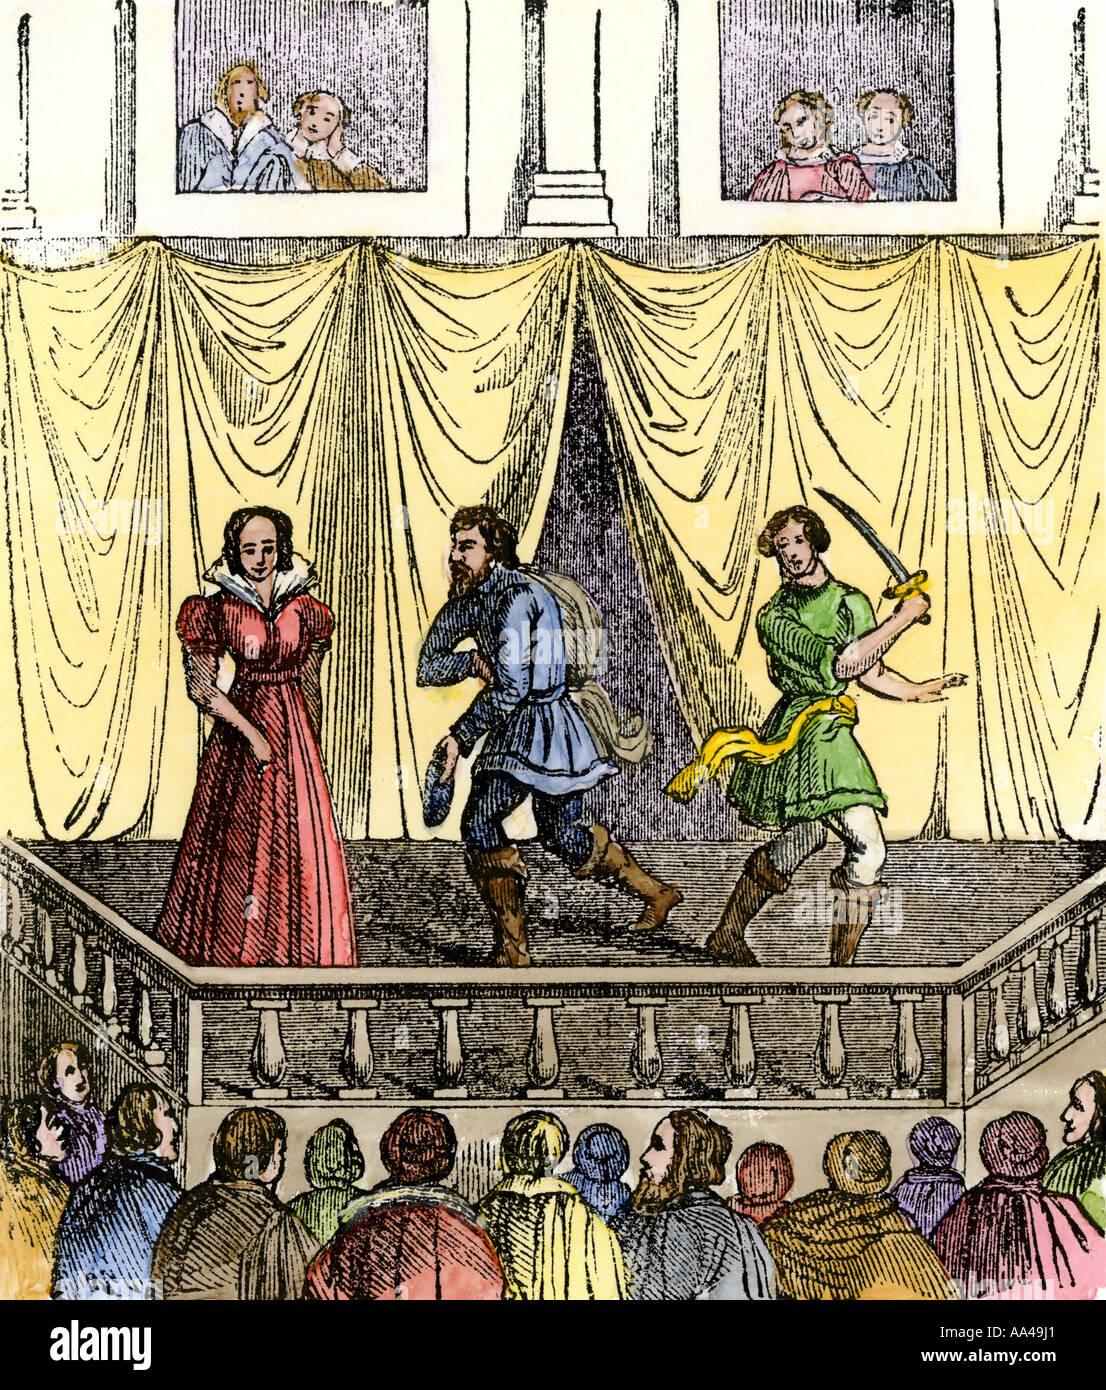 View of the stage and balcony in an Elizabethan theater. Hand-colored woodcut - Stock Image